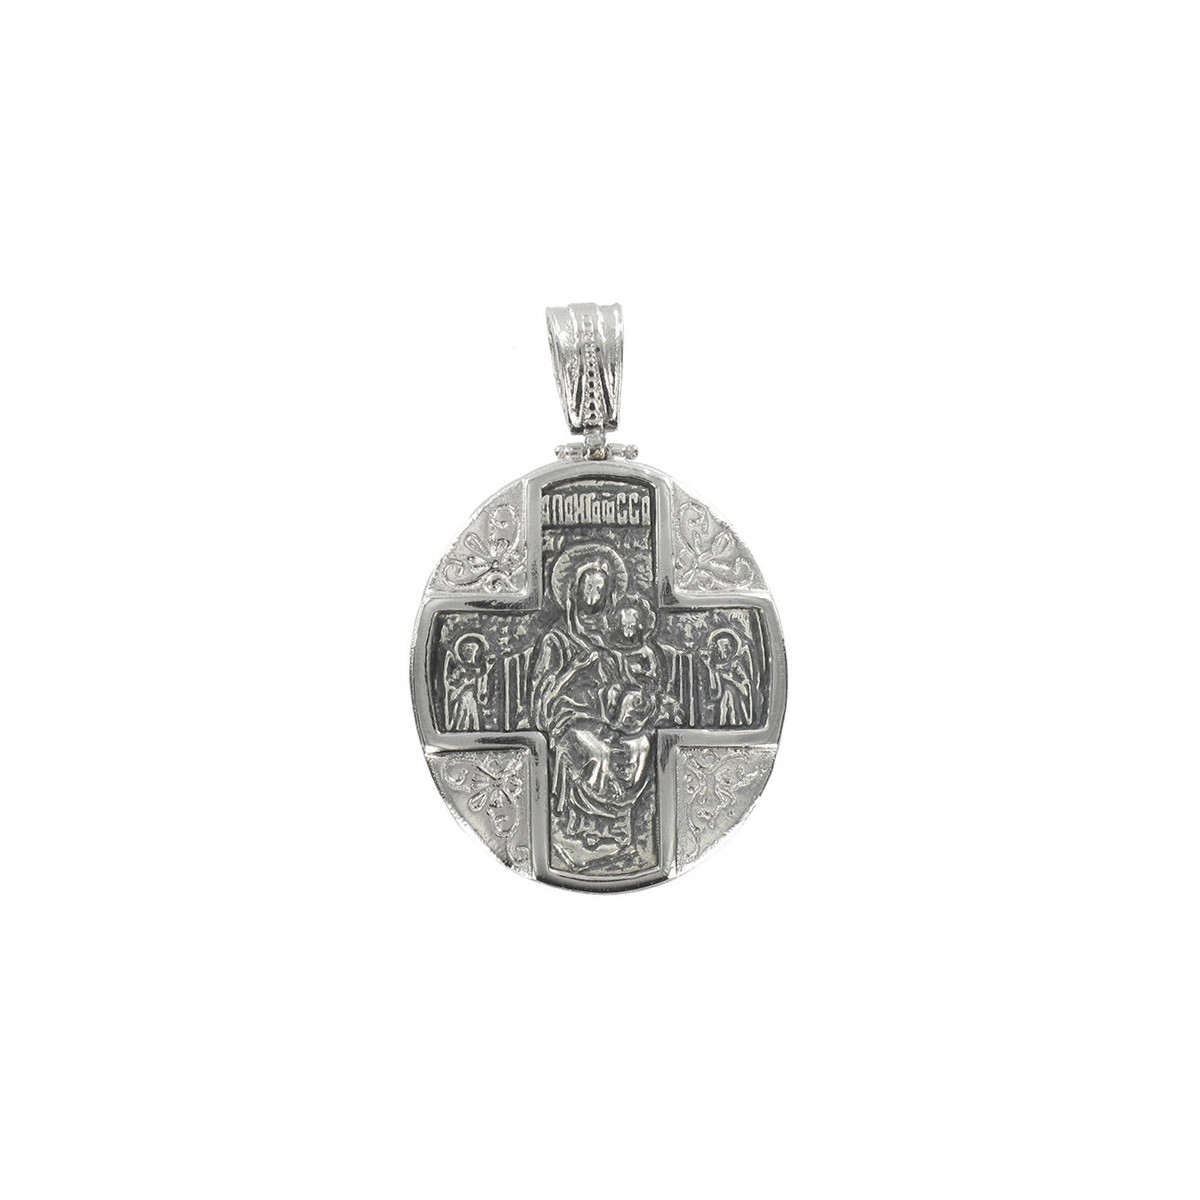 SILVER MEDAL RELIEF IMAGE